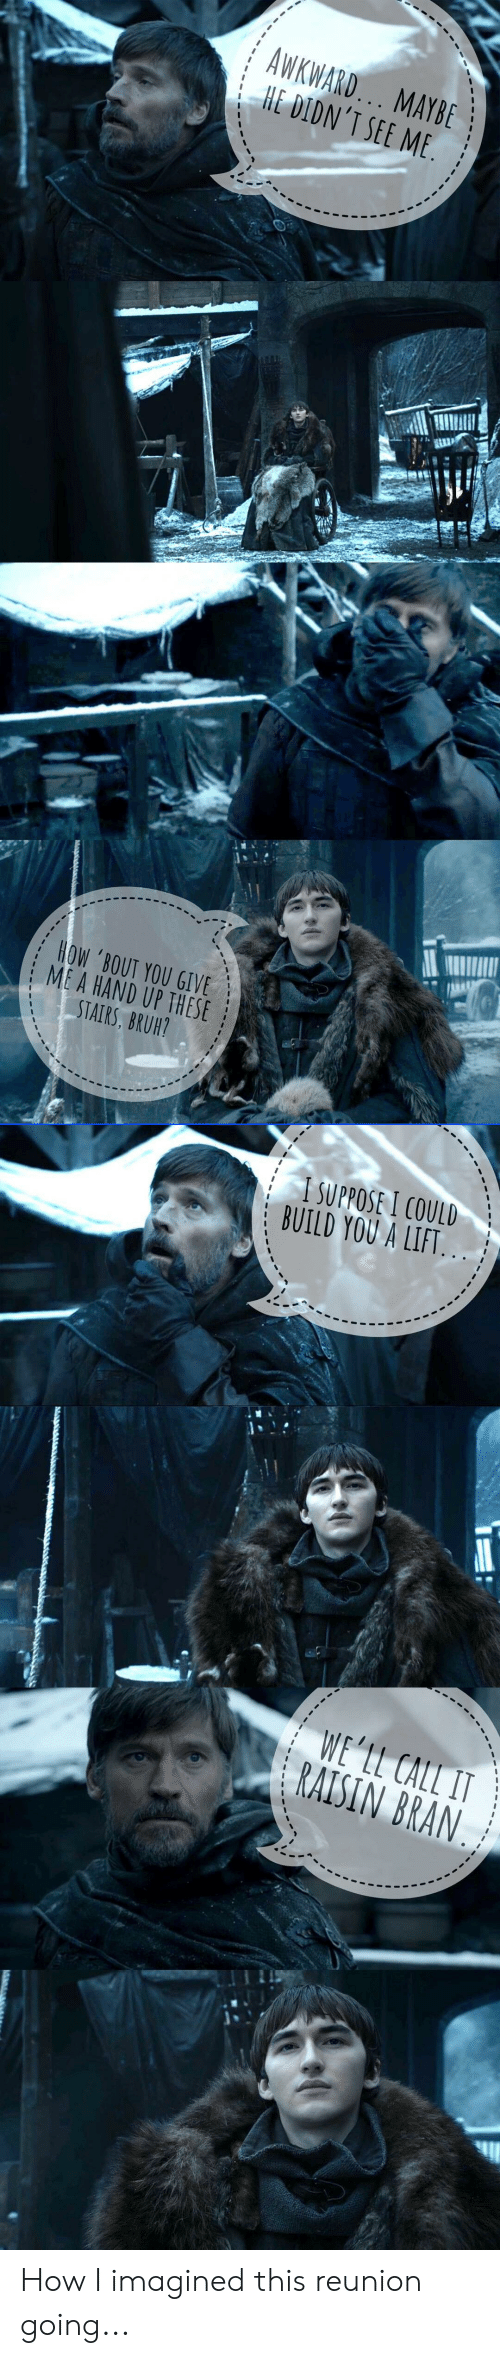 Bruh, Awkward, and Bran: AWKWARD.. MAYBE  i HE IDN'T SEE ME  HOW BOUT YOU GIVE  : ME A HAND UP THESE  STAIRS, BRUH?  | |SUPPOSE!COULD  : BUILD YOU A LIFT. .  RAISIN BRAN  1. How I imagined this reunion going...